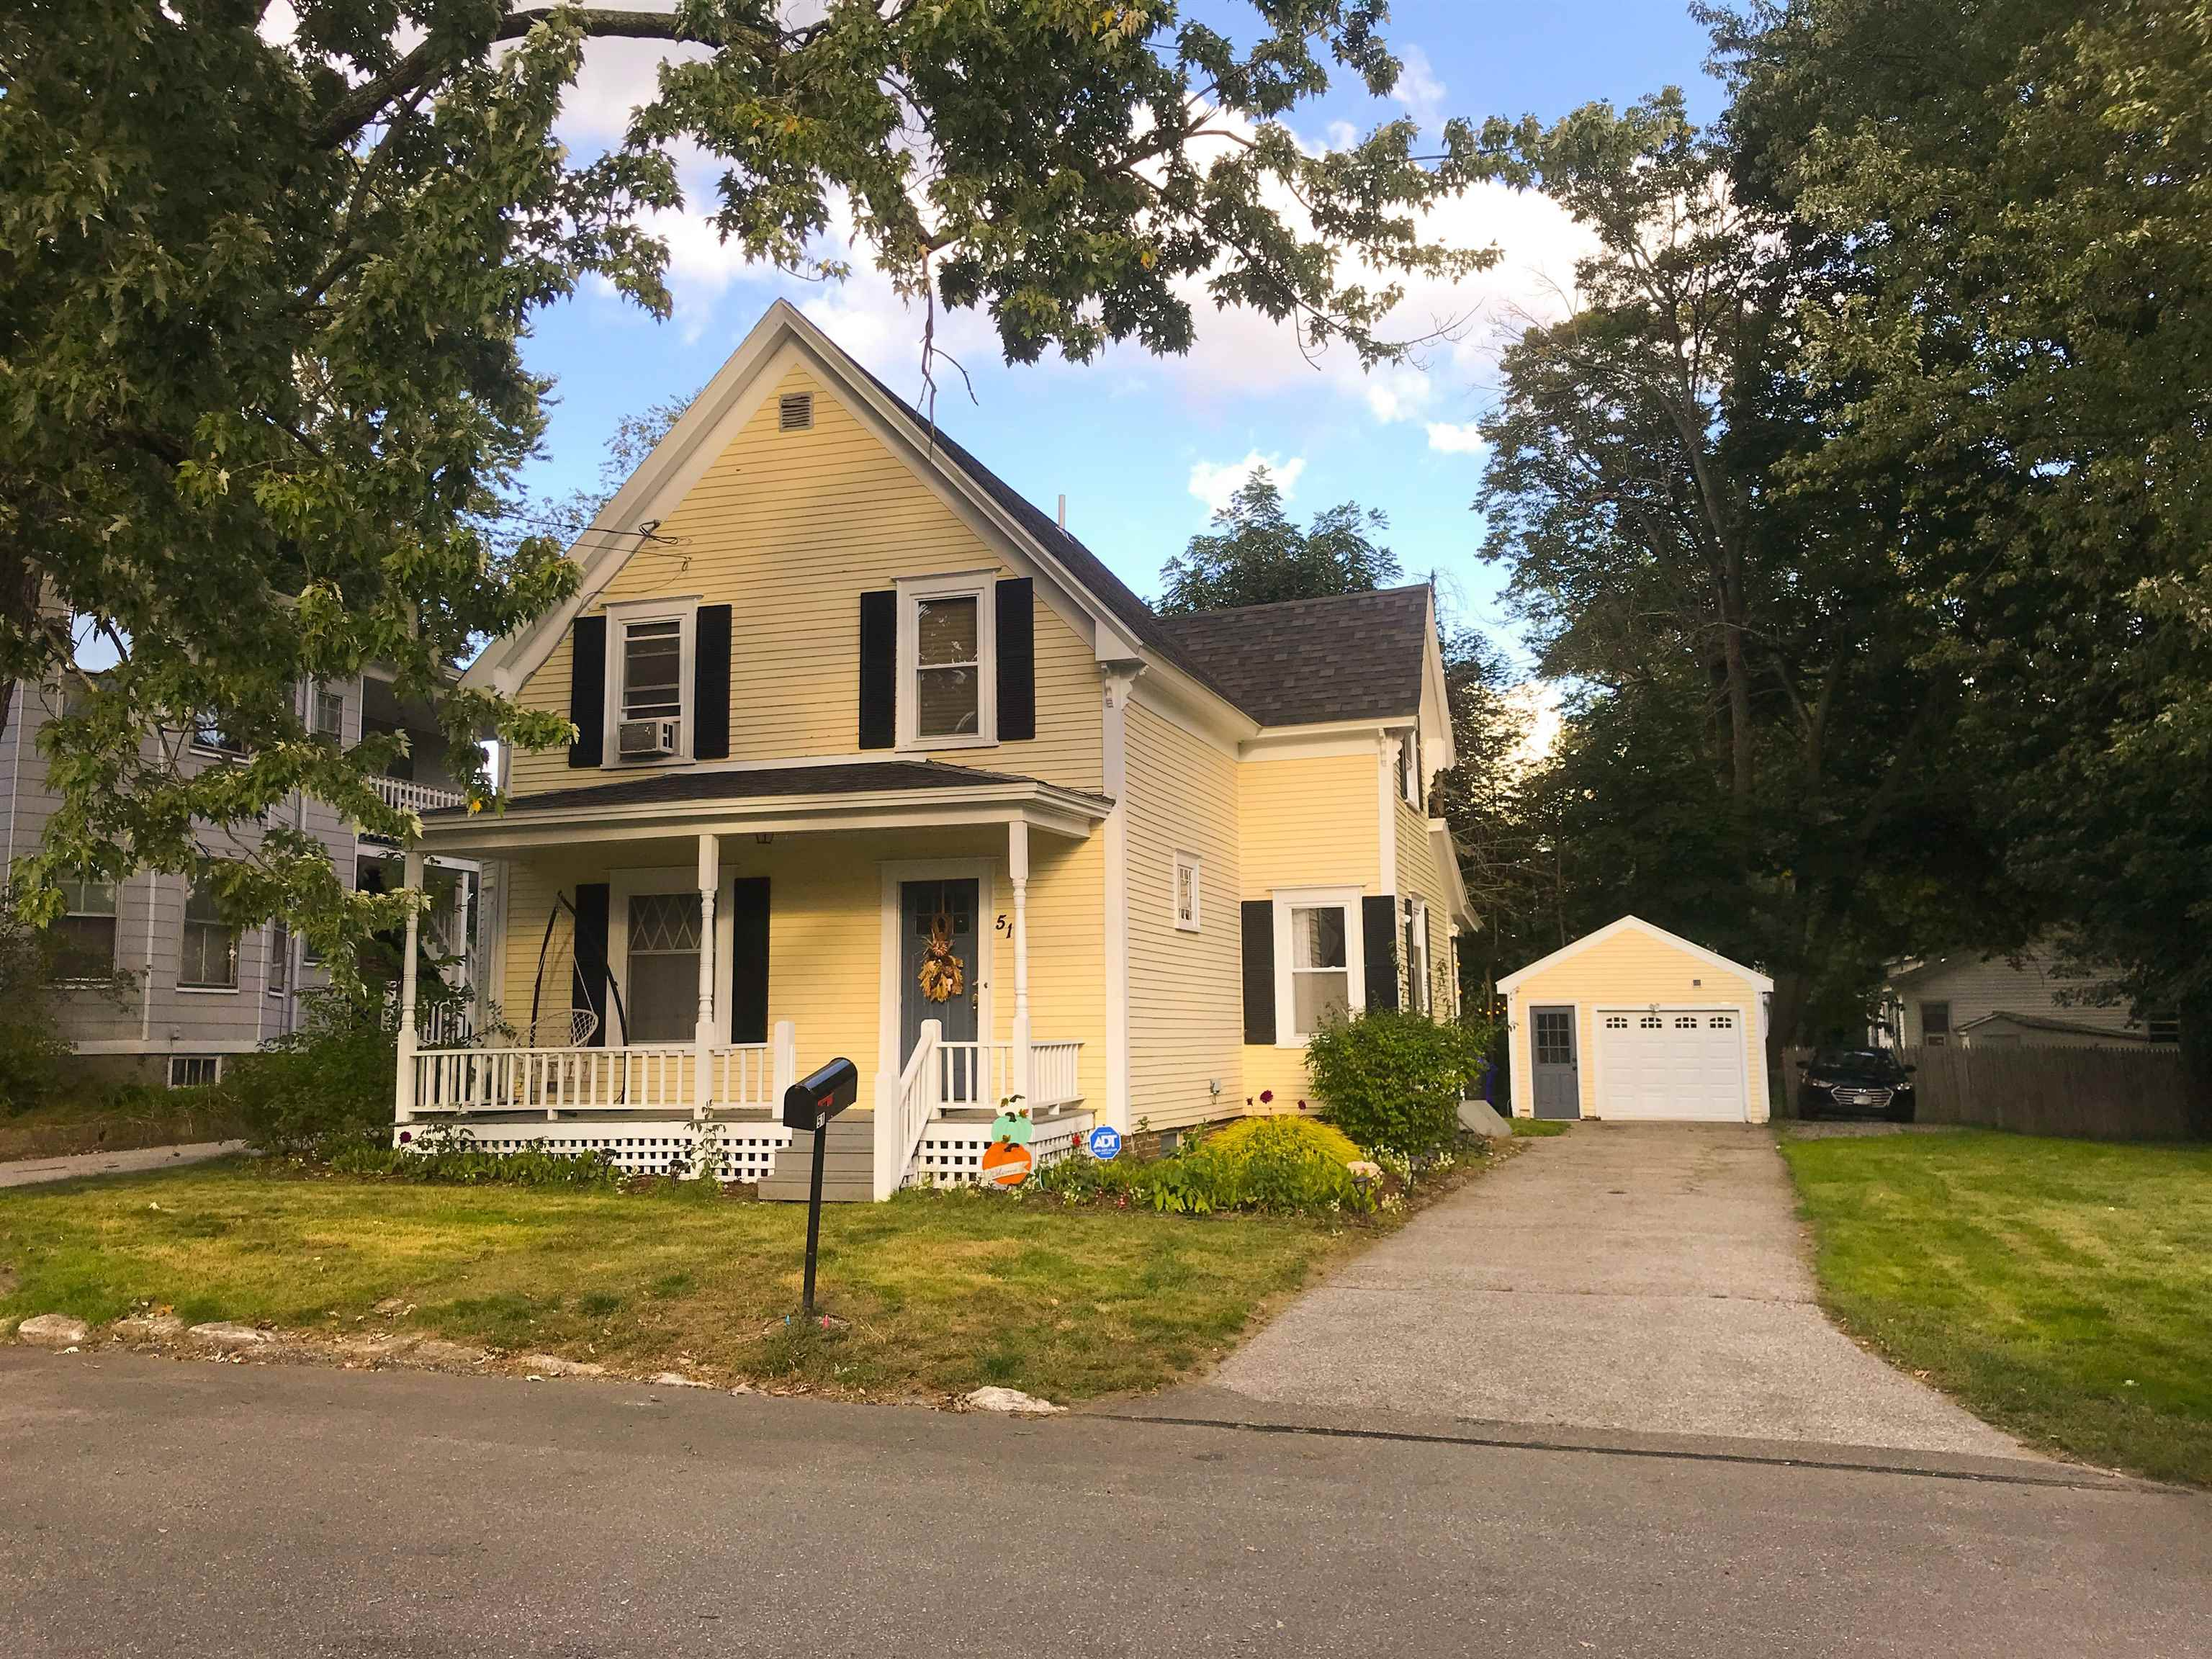 Photo of 51 Delaware Avenue Manchester NH 03104